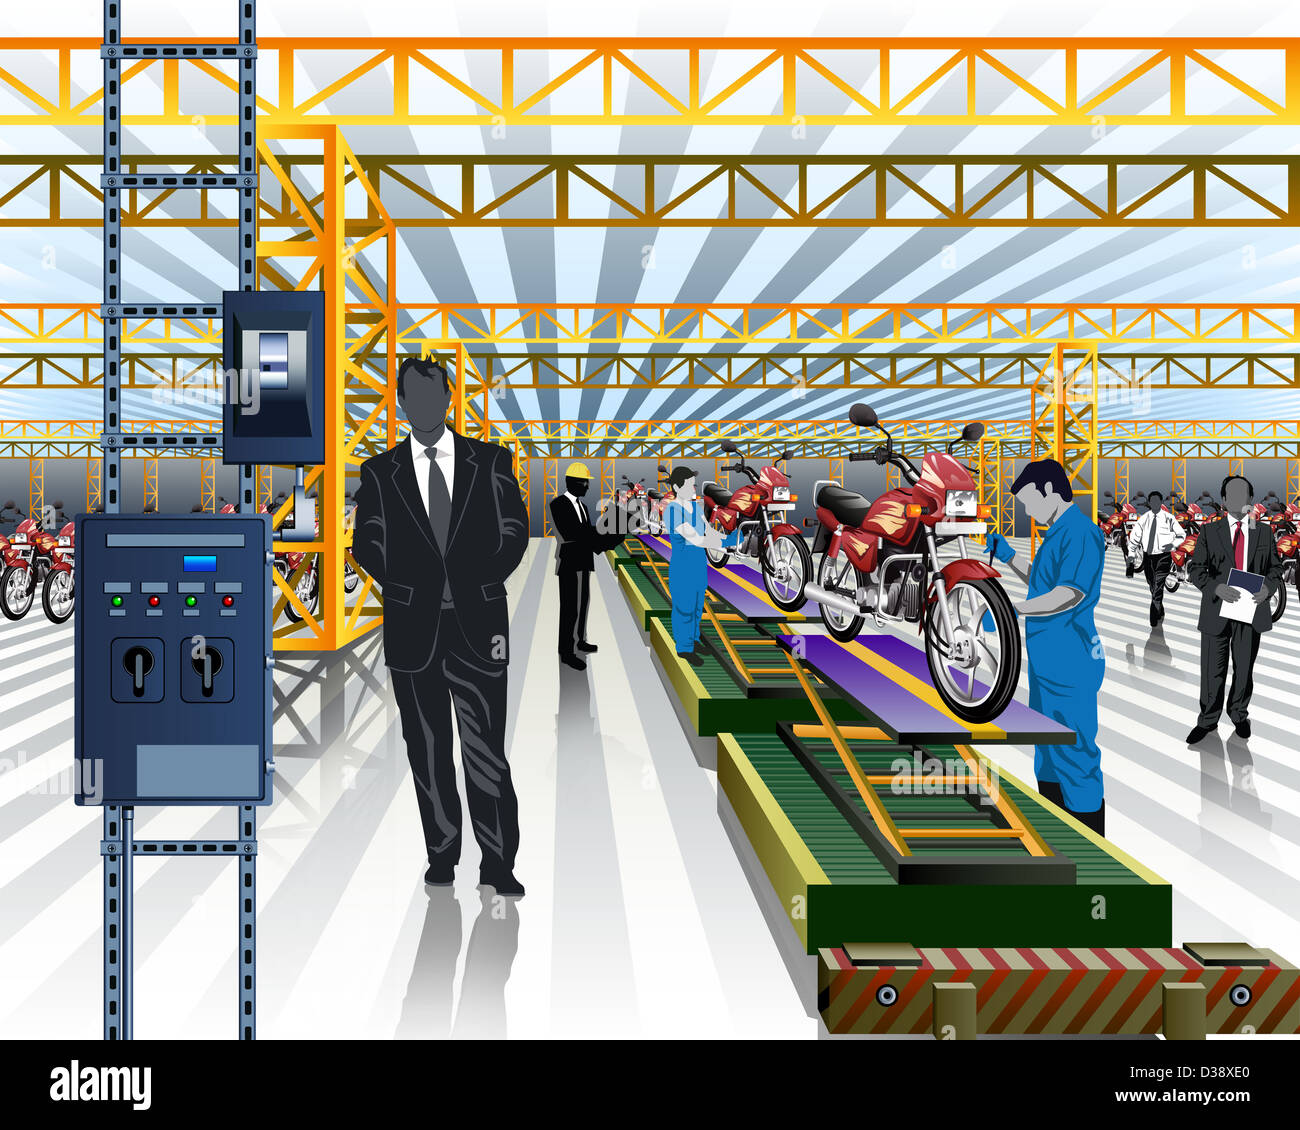 Worker testing motorcycles on production line in a factory - Stock Image